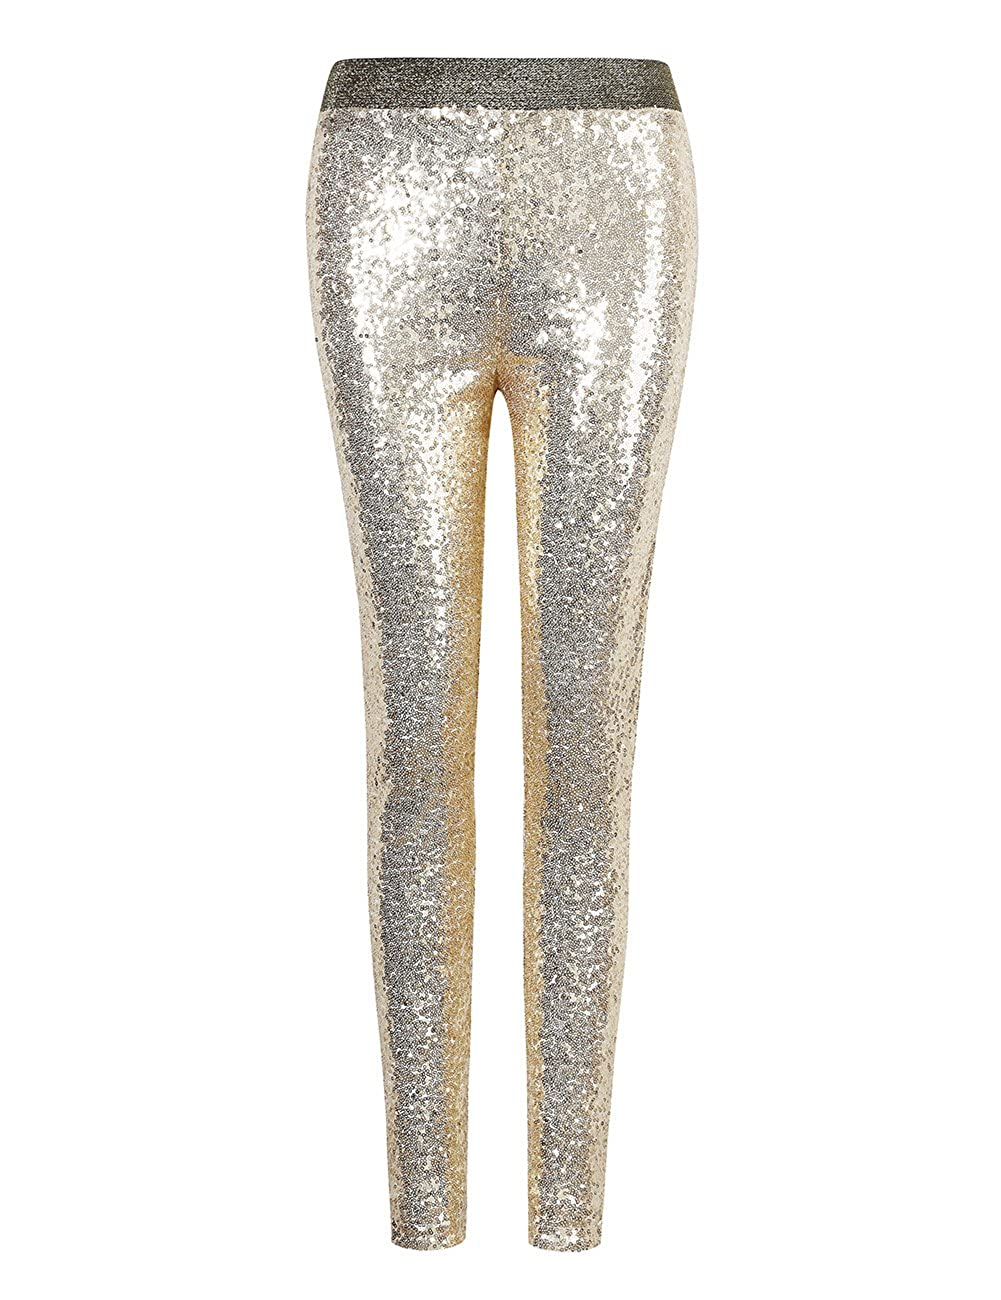 Lanlan Women Fashion Shiny Sequin Stretch Underwear Skinny Legging Tight Pant XJSJ-0502-MC01